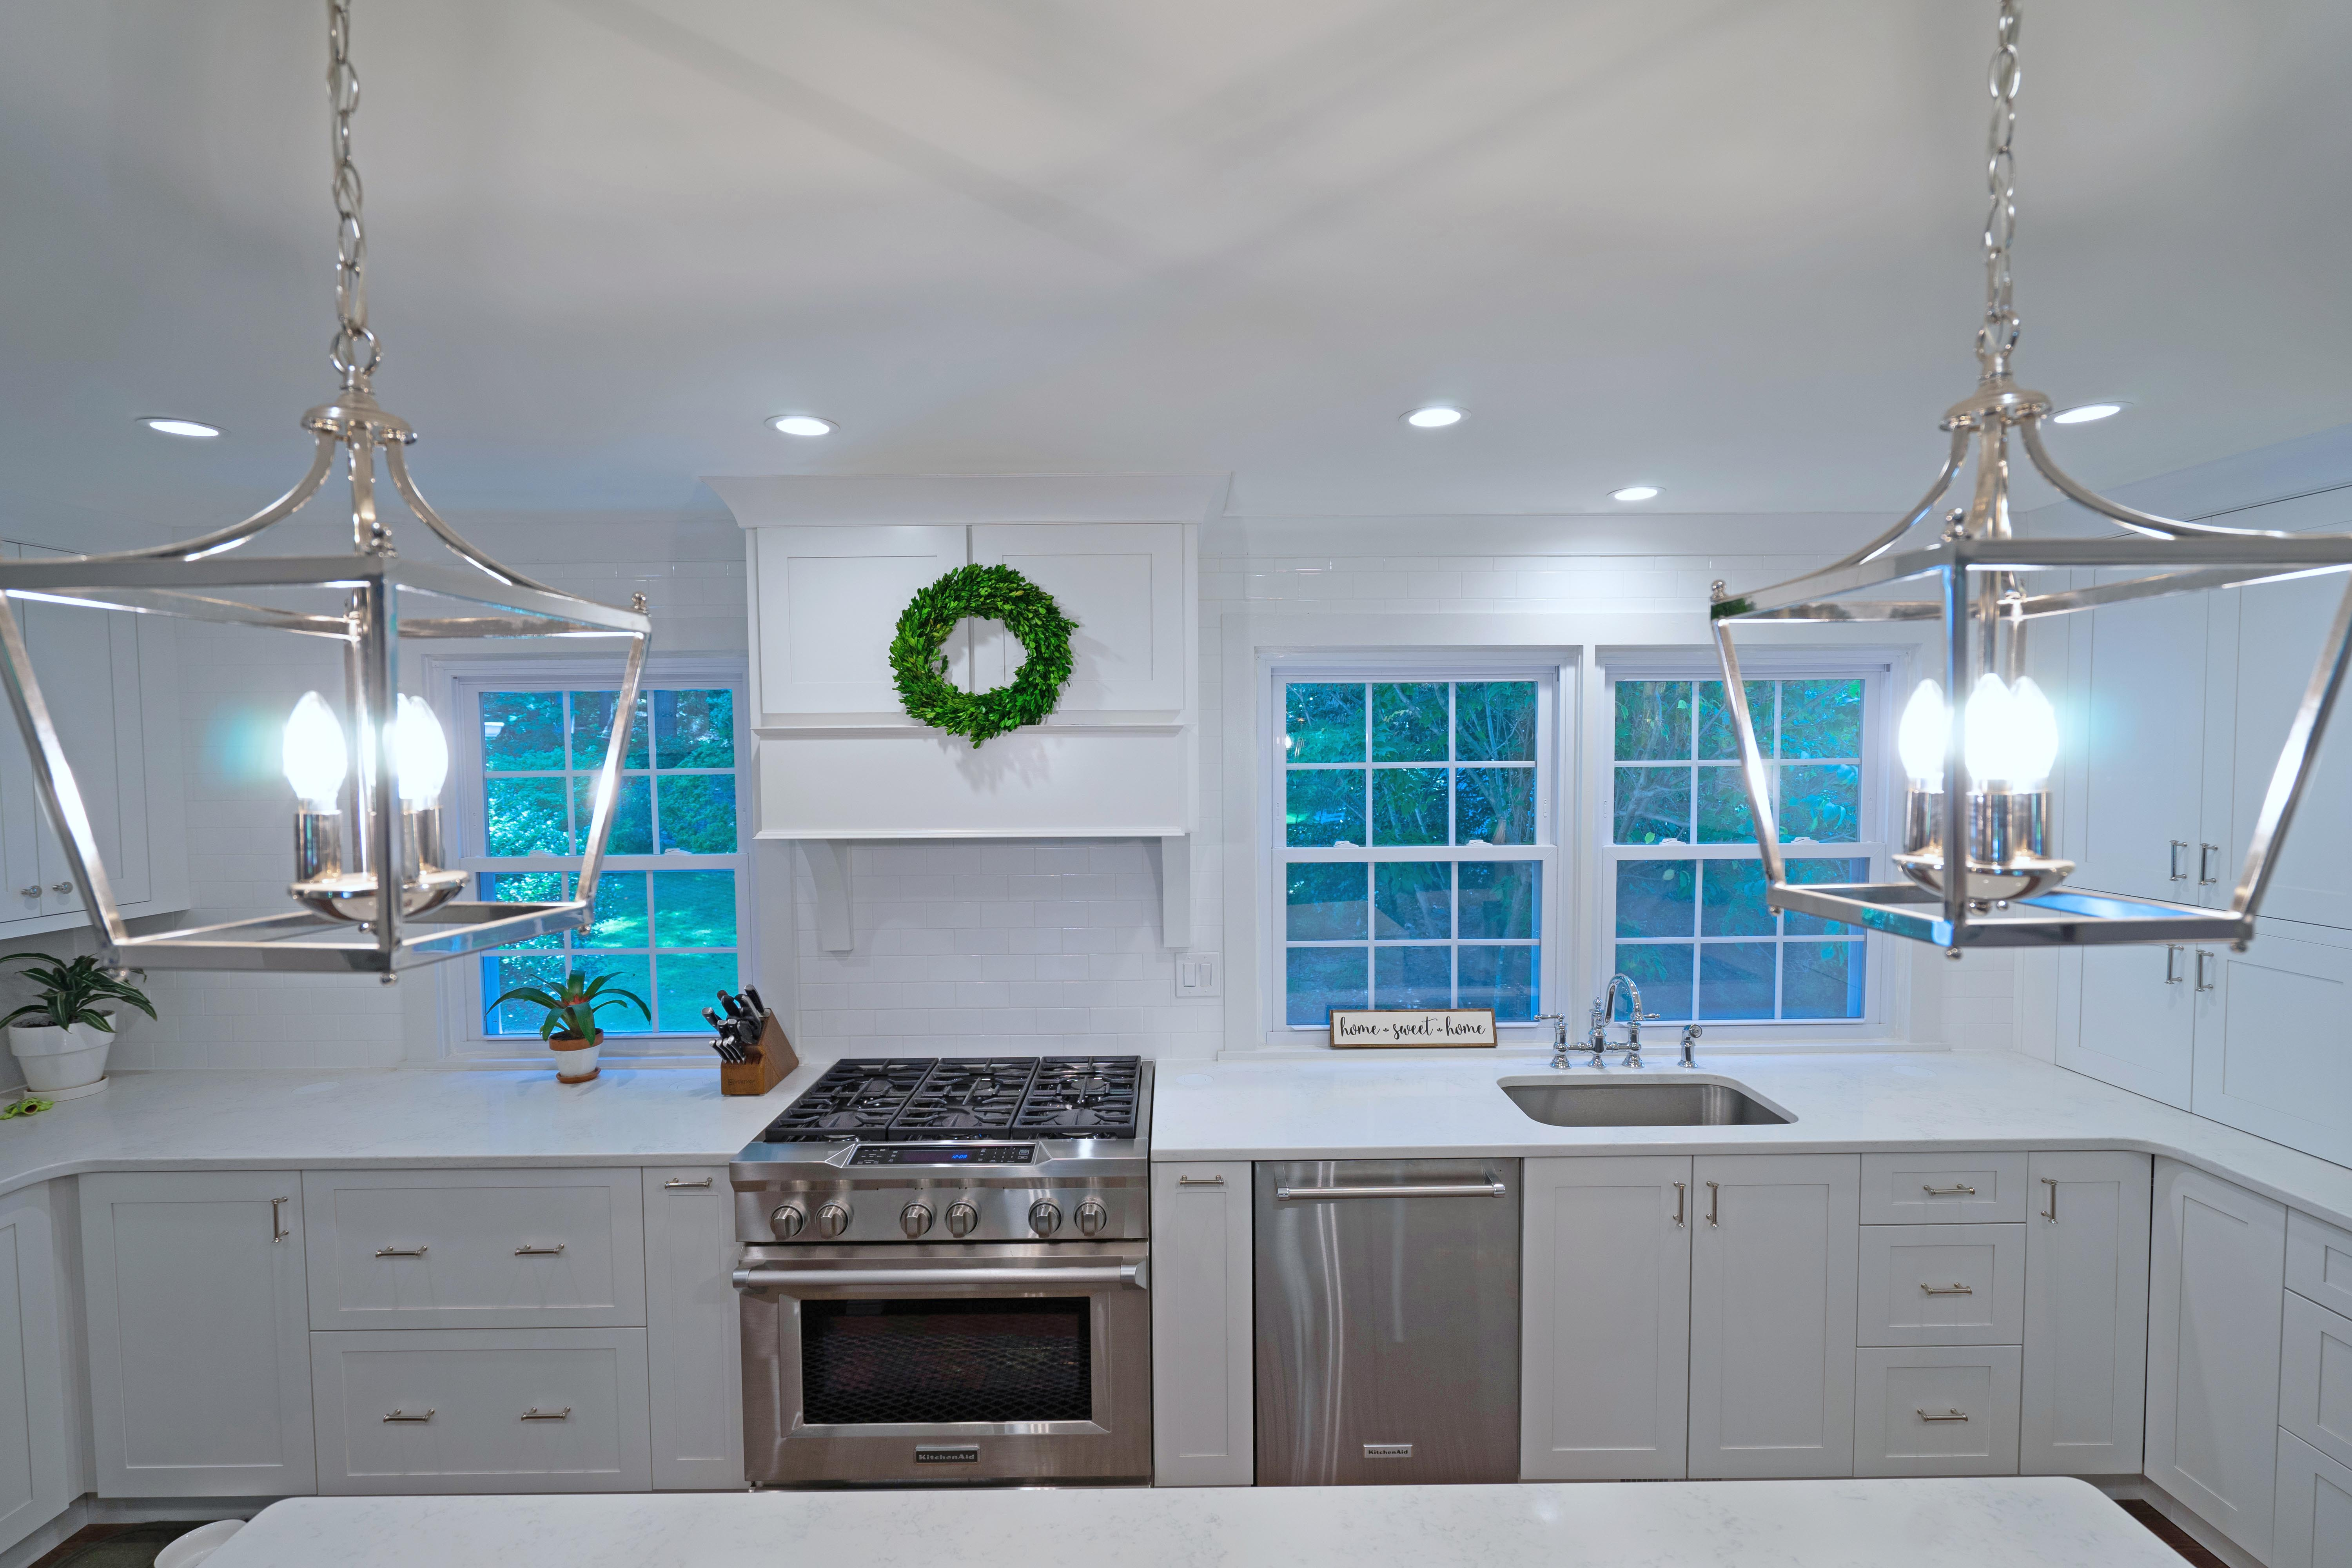 admin, Author at Kitchen & Bath Remodeling/Cabinets | USA Cabinet Store